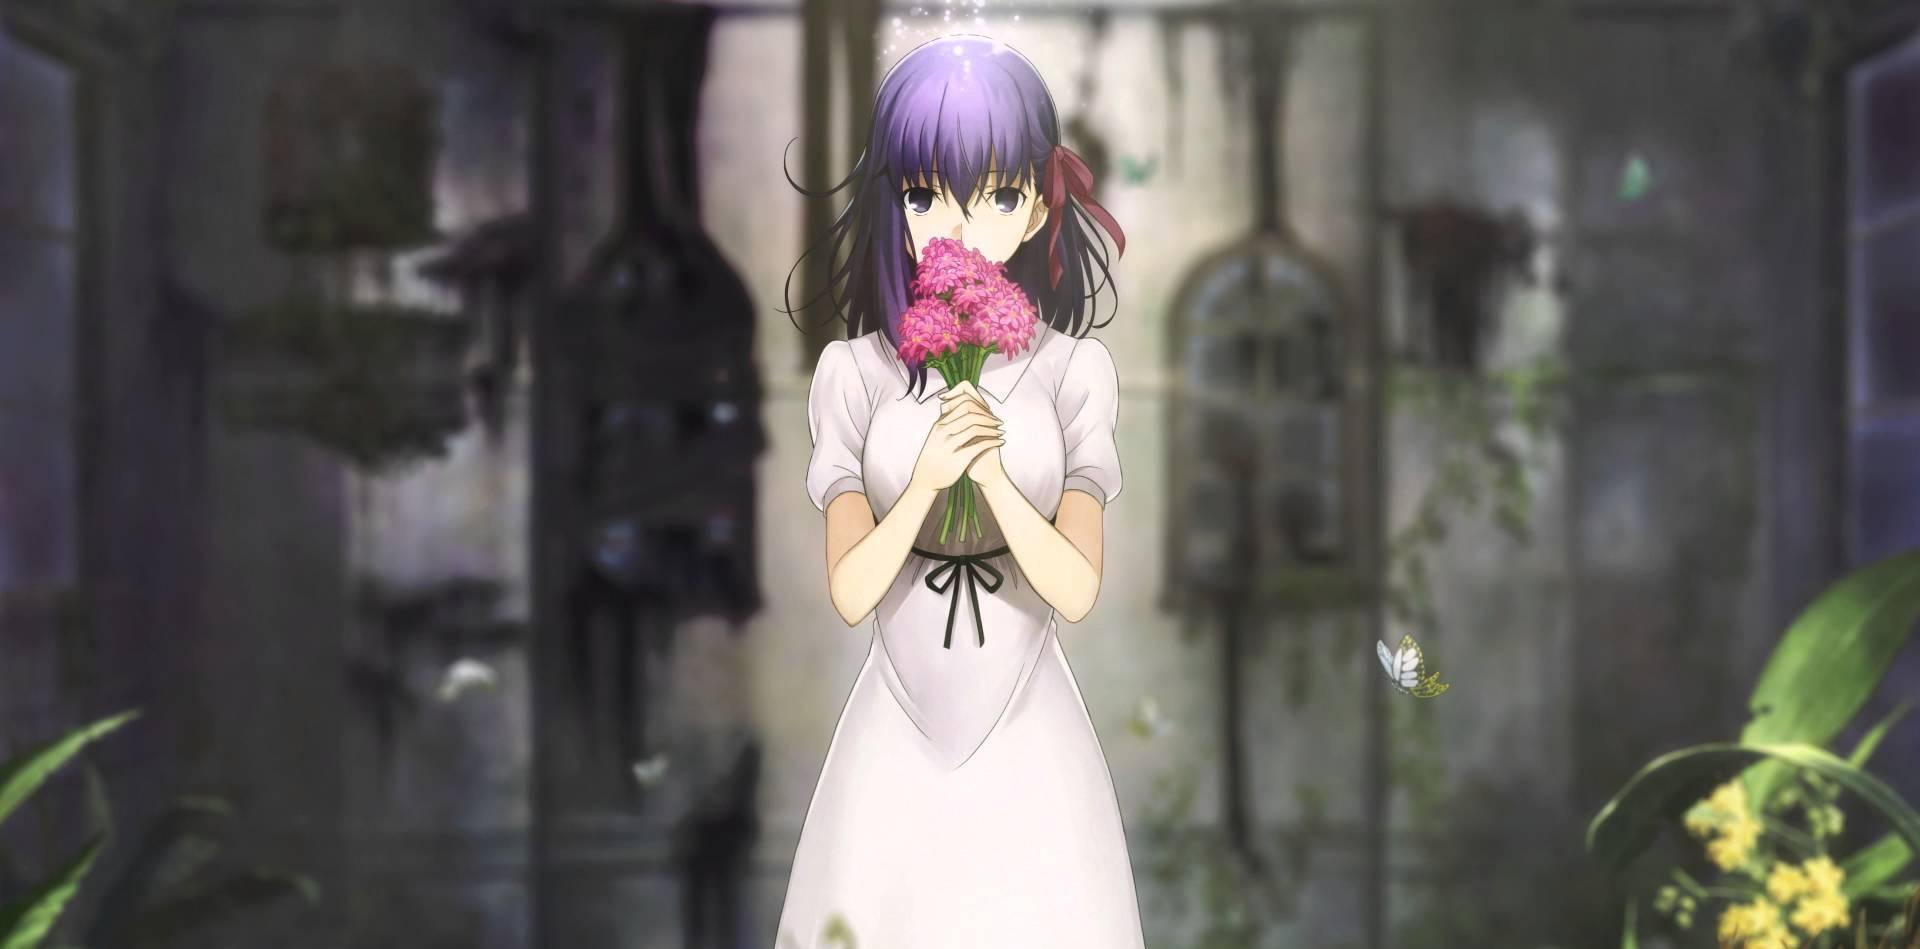 Xem phim Fate/stay night - Heaven's Feel I - 劇場版 Fate/stay night [Heaven's Feel] Vietsub